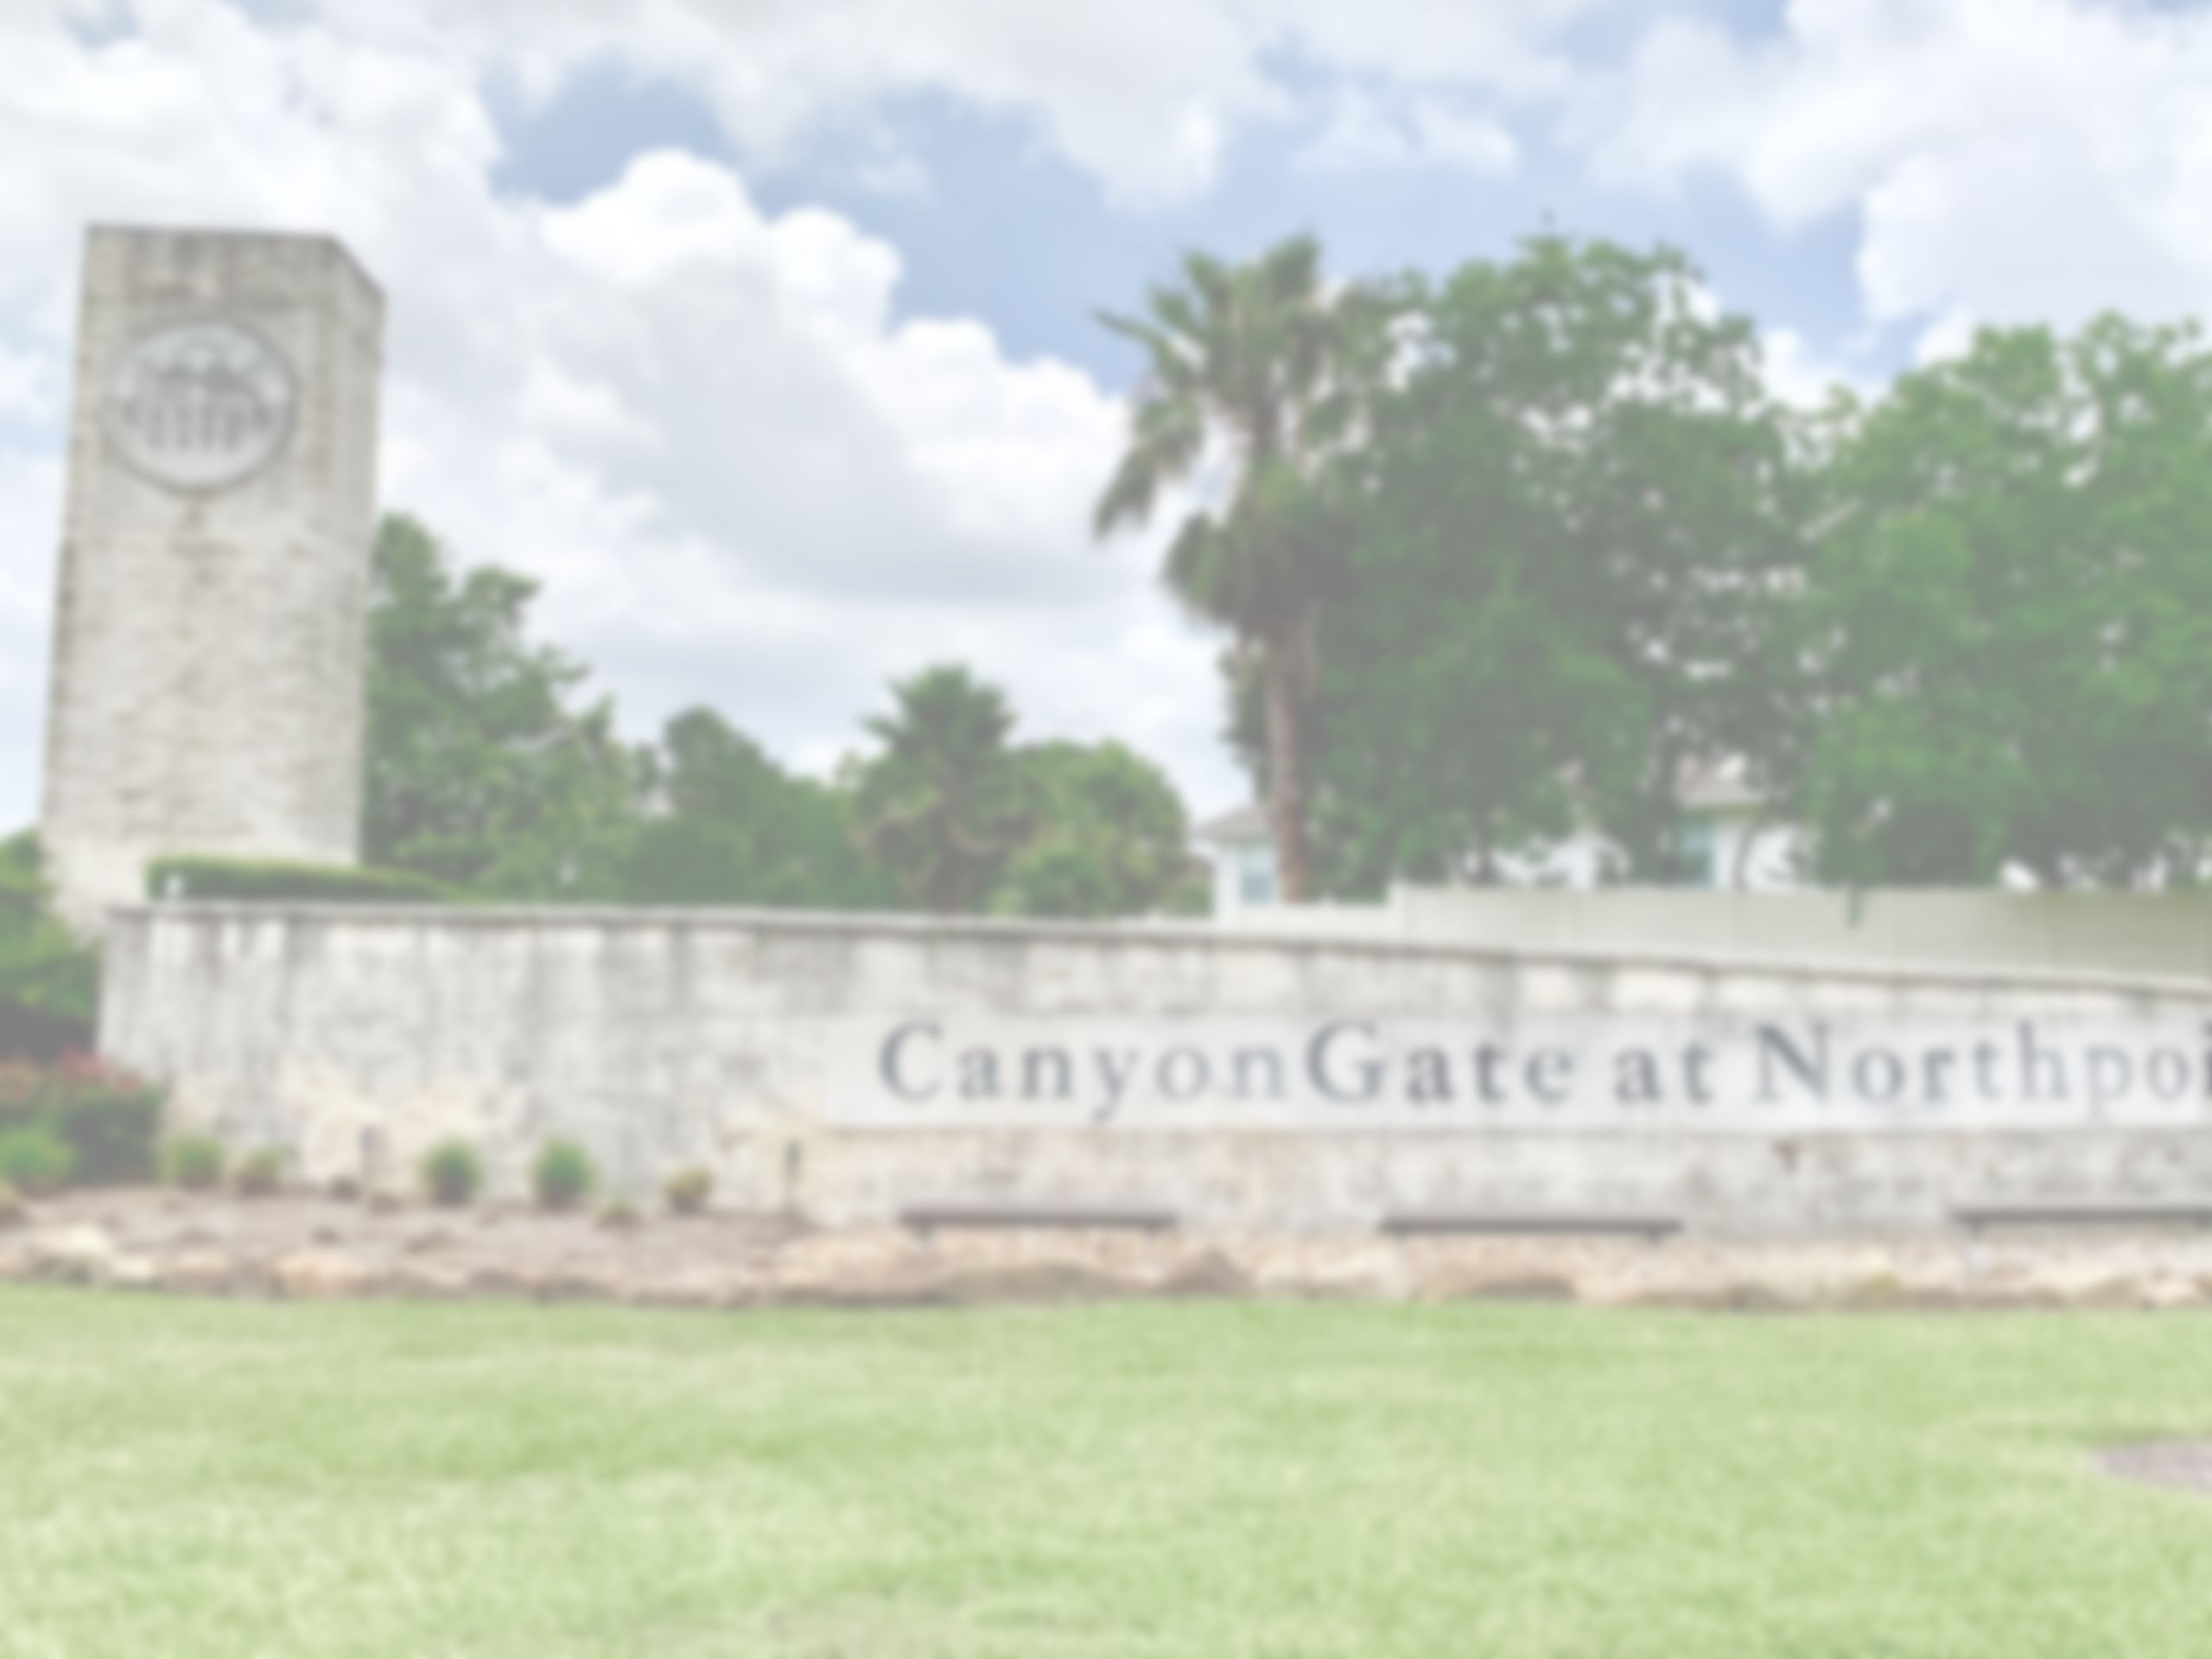 Canyon Gate at Northpointe